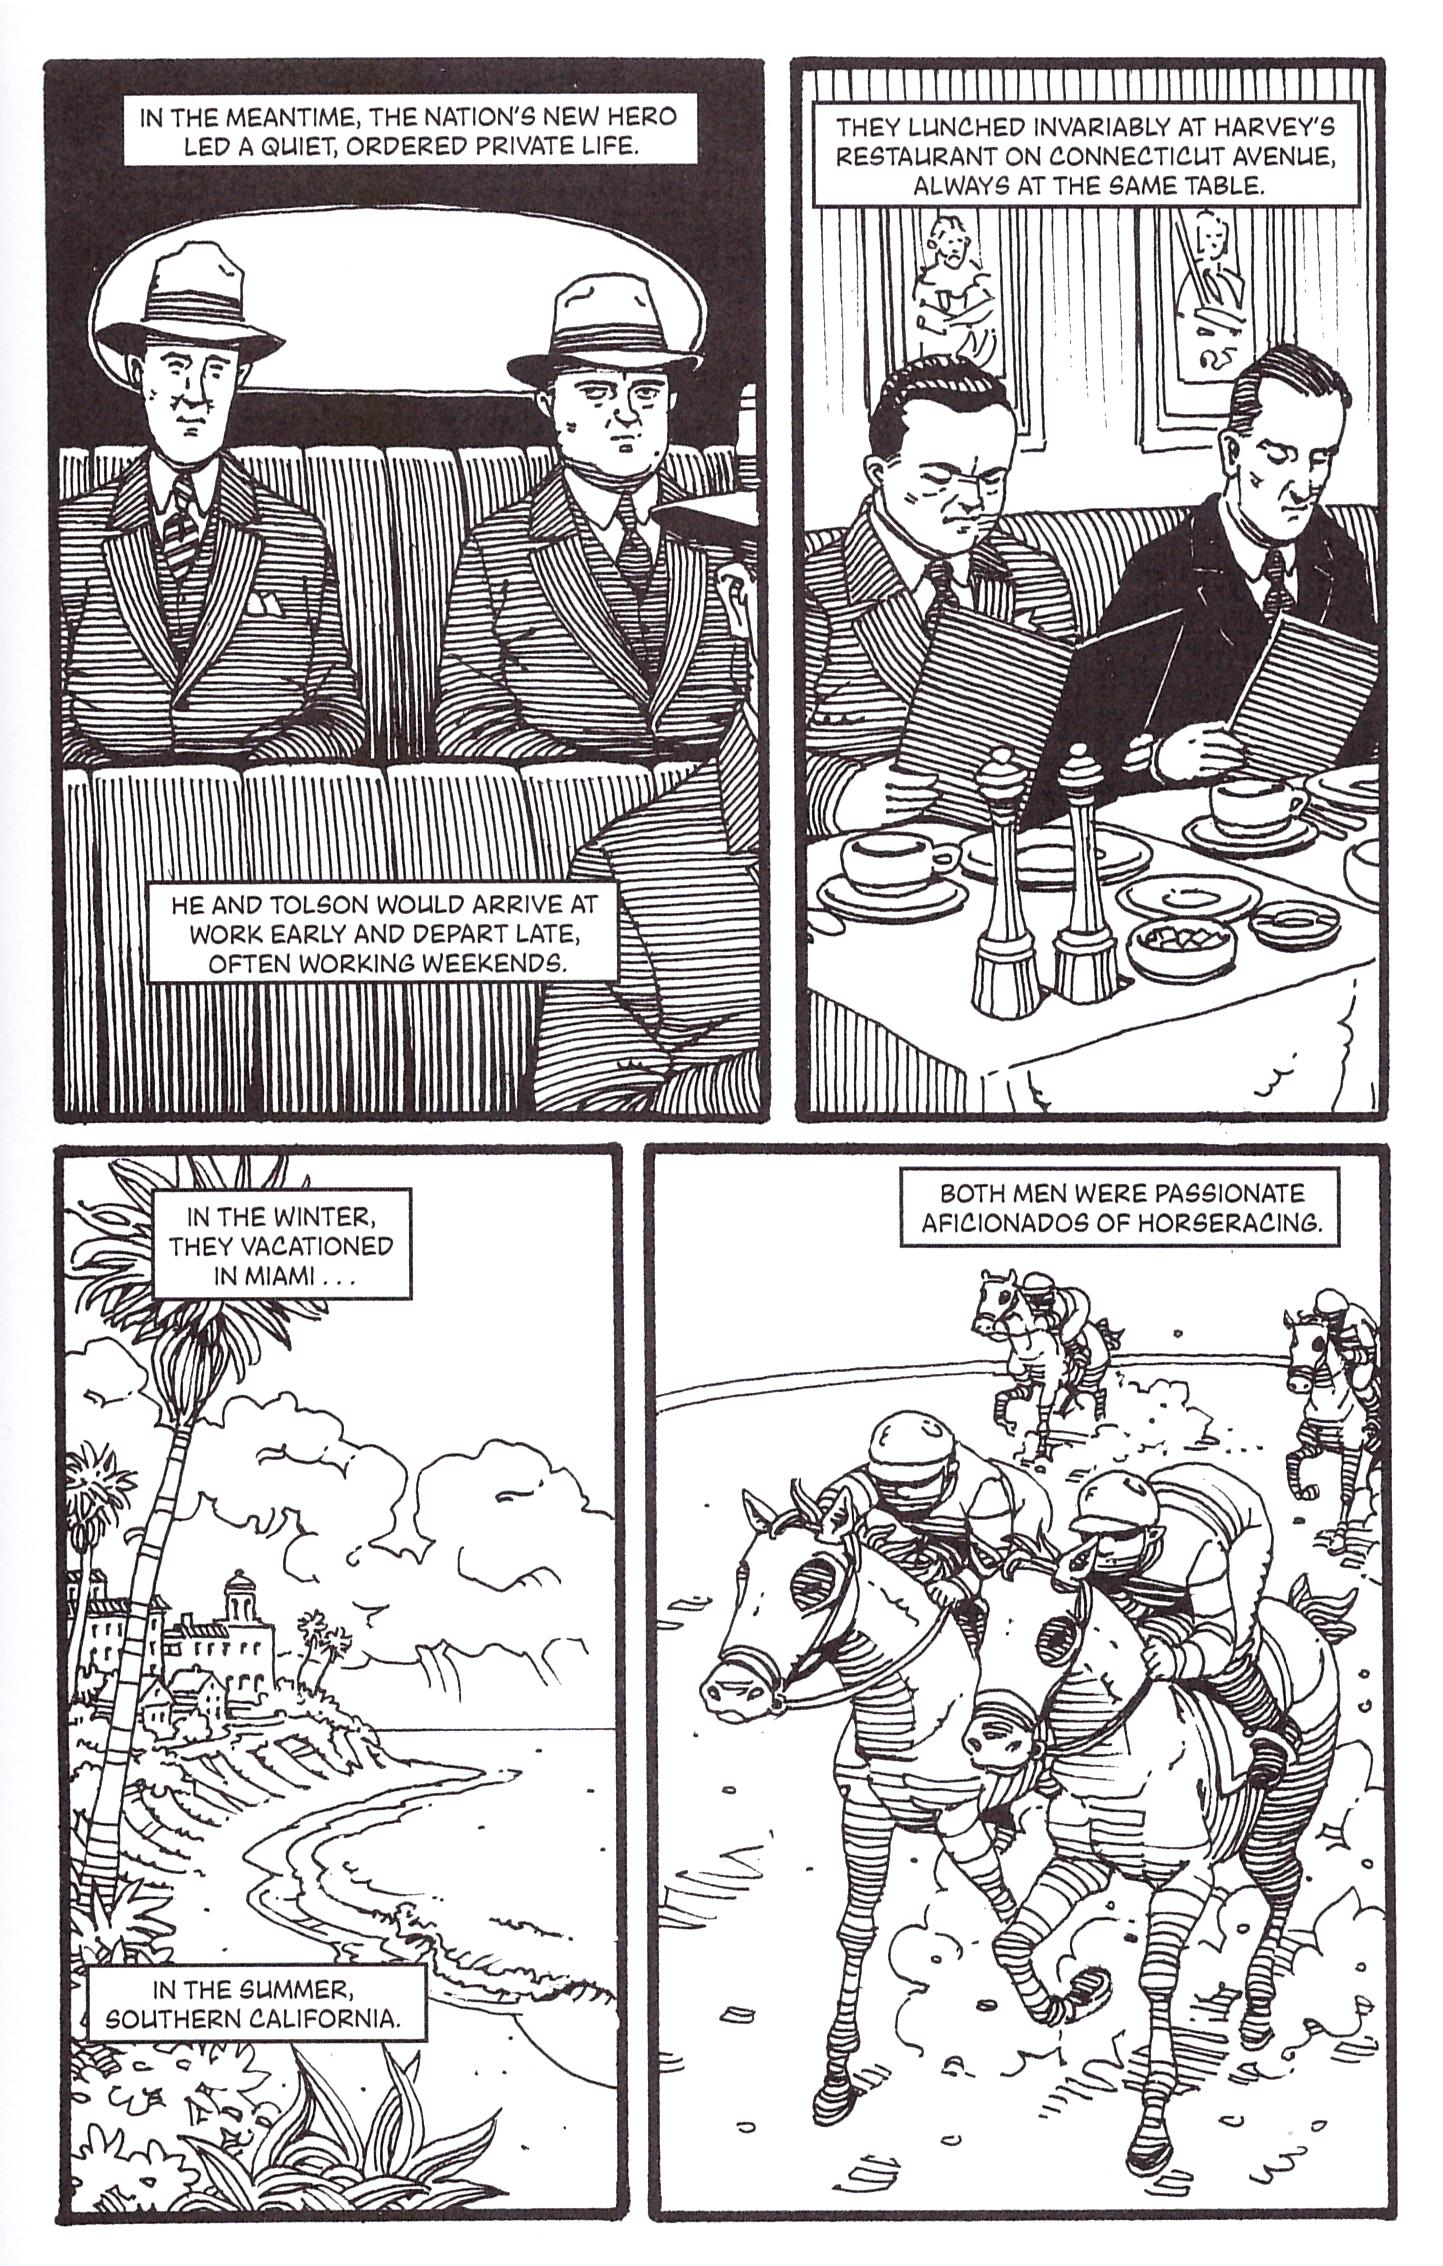 J. Edgar Hoover a Graphic Biography review